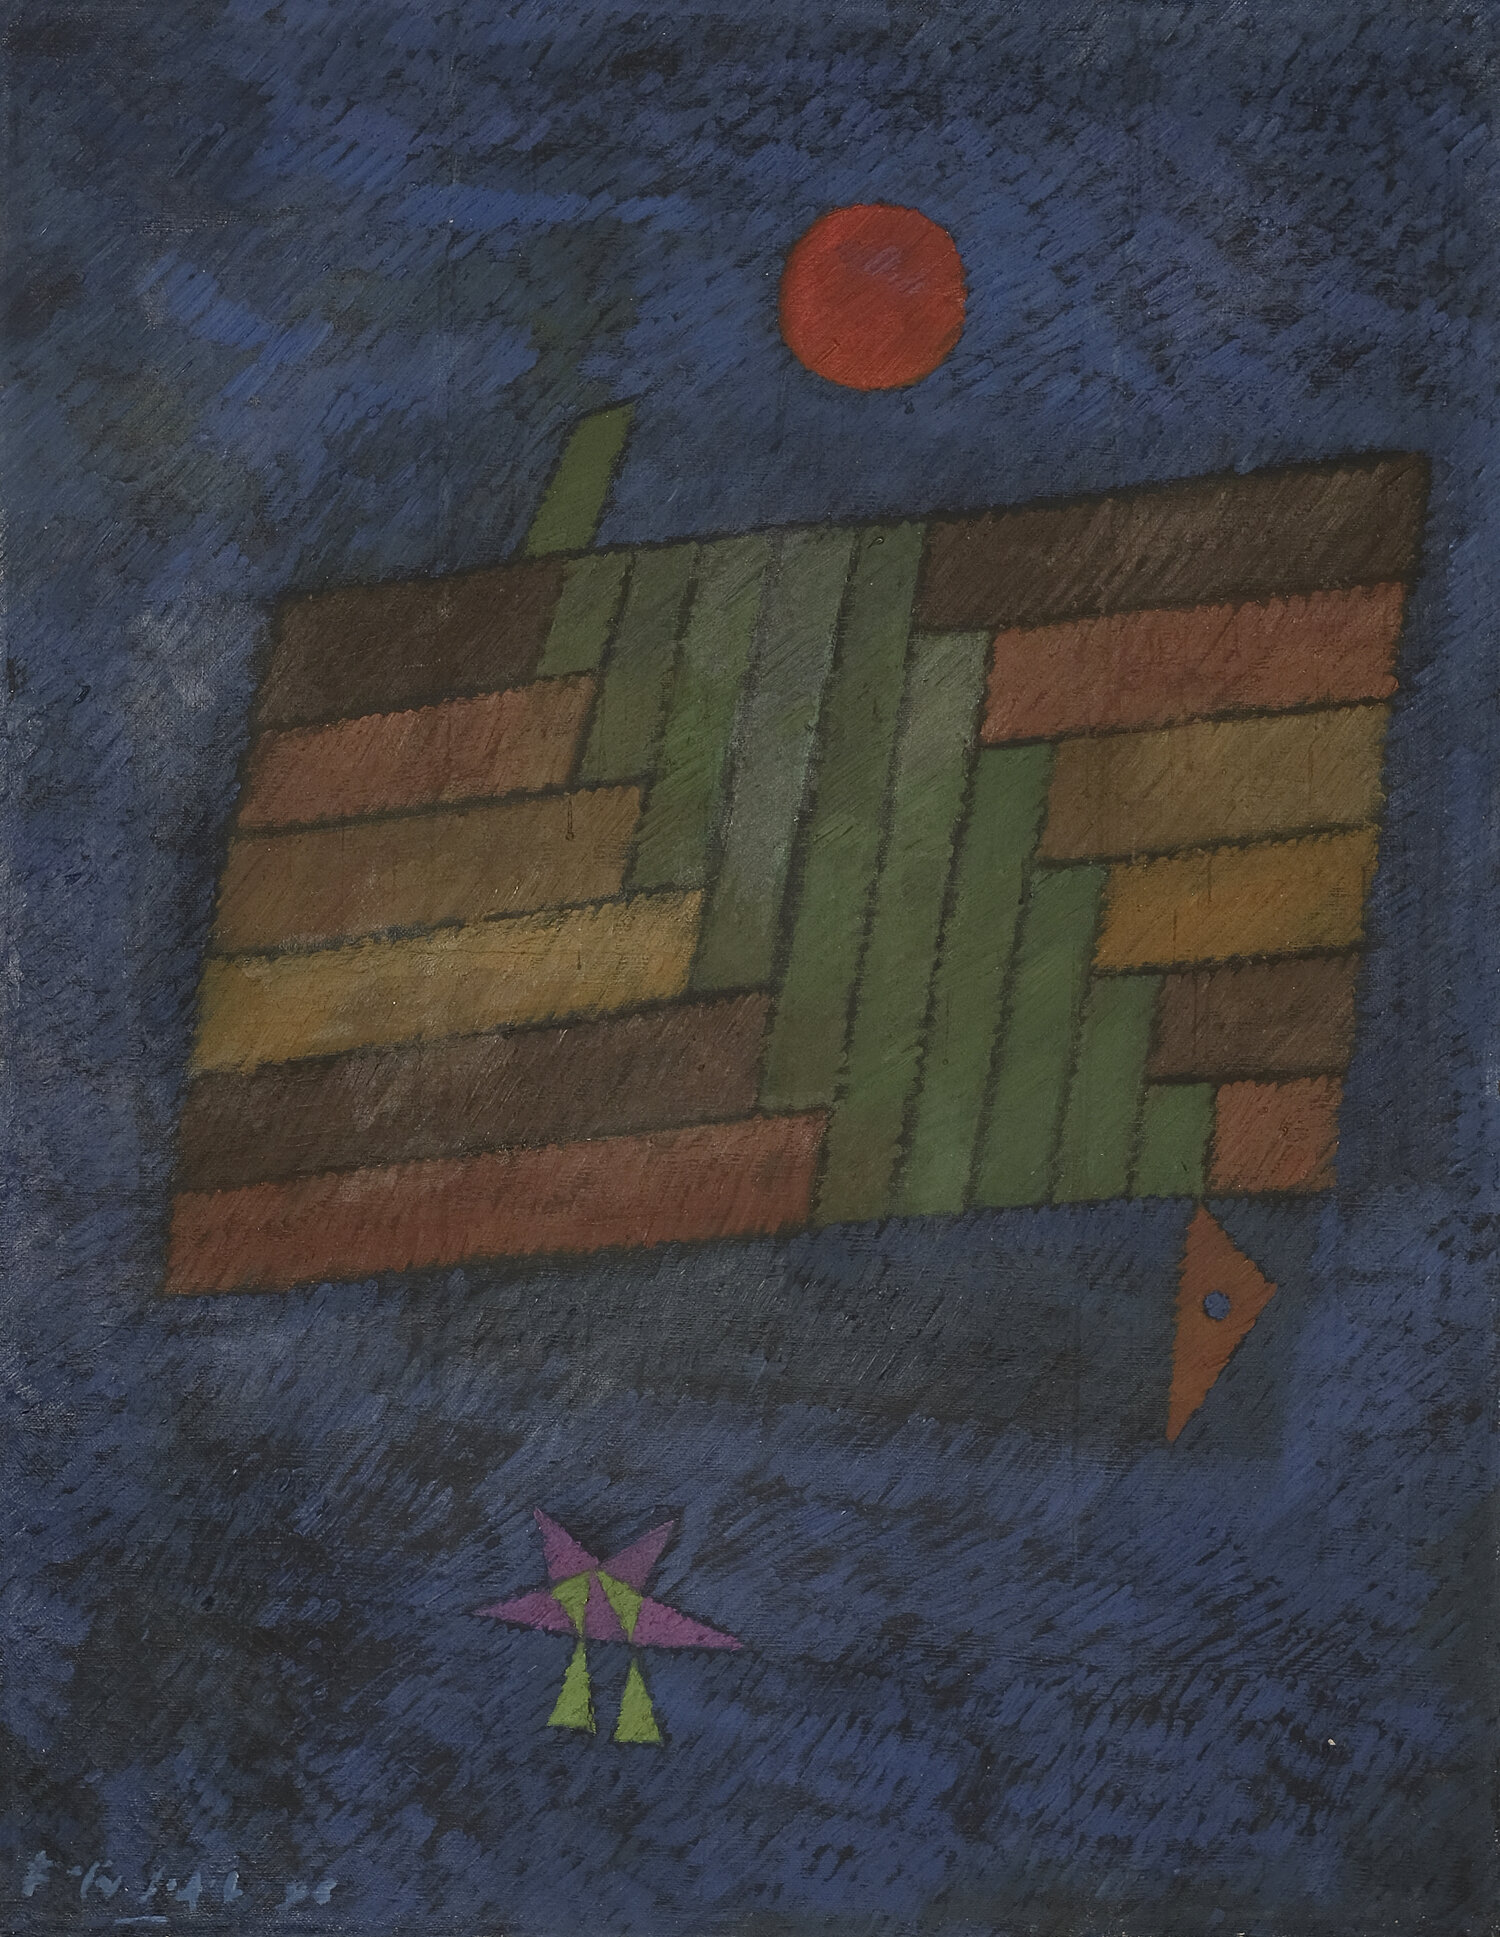 Fadjar Sidik, Dinamika Keruangan (Space Dynamics), oil on canvas, 90 x 60 cm, 1996